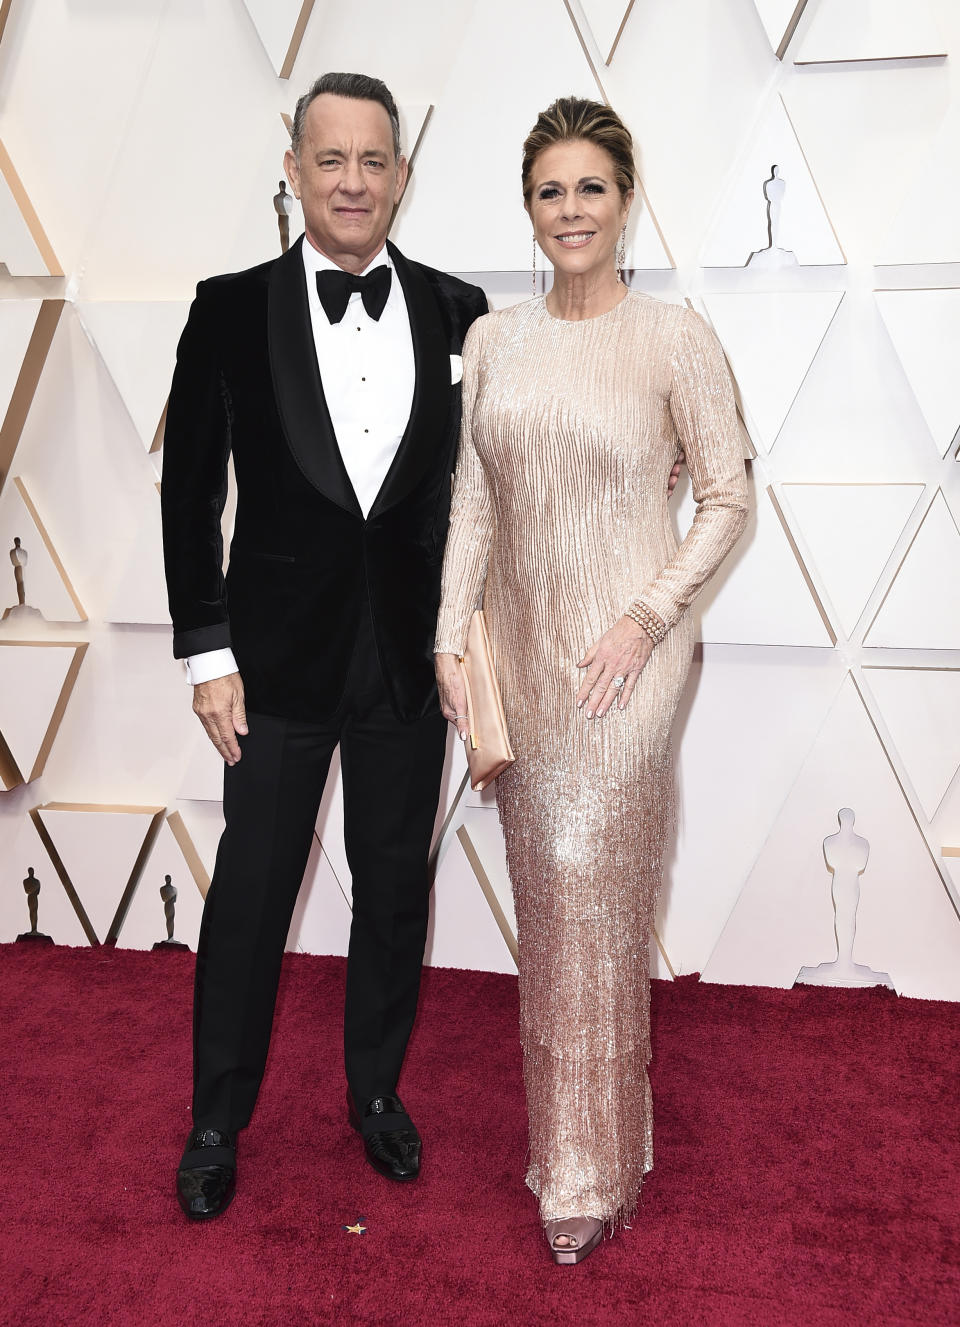 Uno de los matrimonios más longevos de Hollywood, el que forman Tom Hanks y Rita Wilson, nos retrotrajeron a los años 20 posando con estos looks ante los fotógrafos. (Foto: Jordan Strauss / Invision / AP).